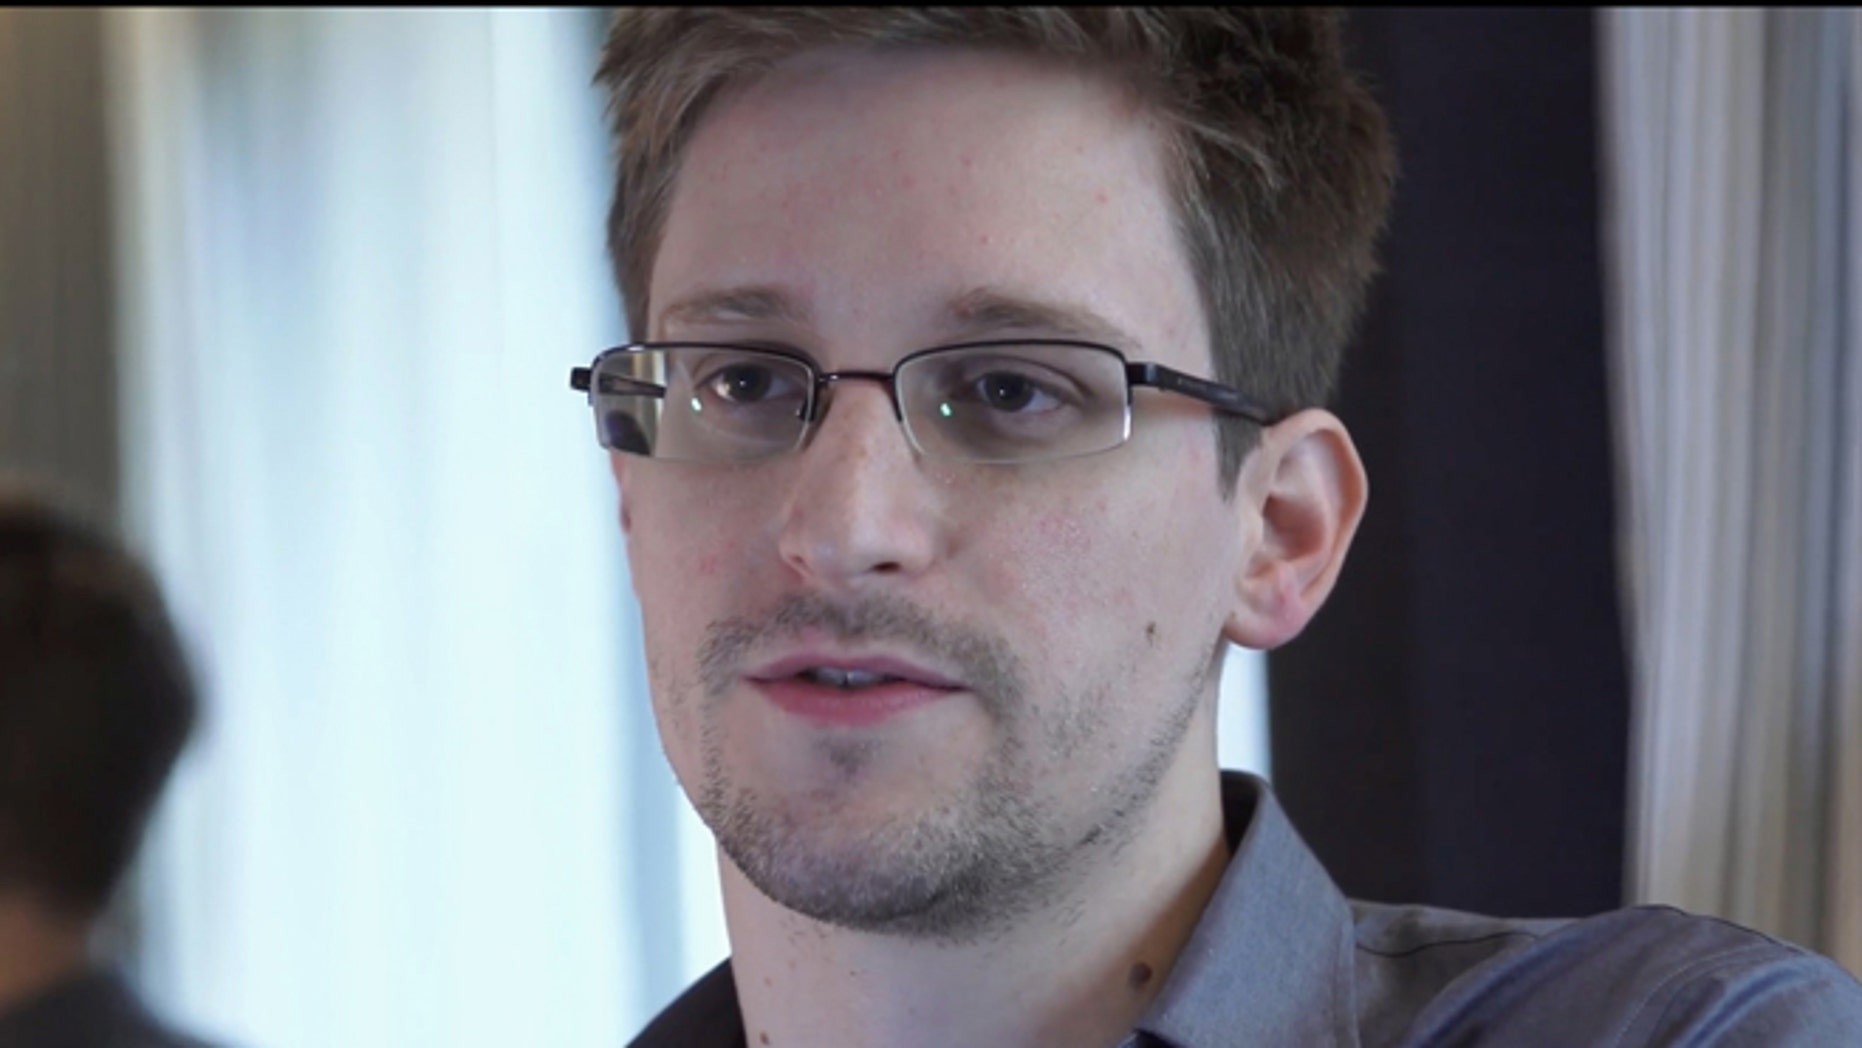 June 9, 2013: Edward Snowden, who worked as a contract employee at the National Security Agency, speaks to reporters after disclosing massive amounts of sensitive U.S. intelligence data.